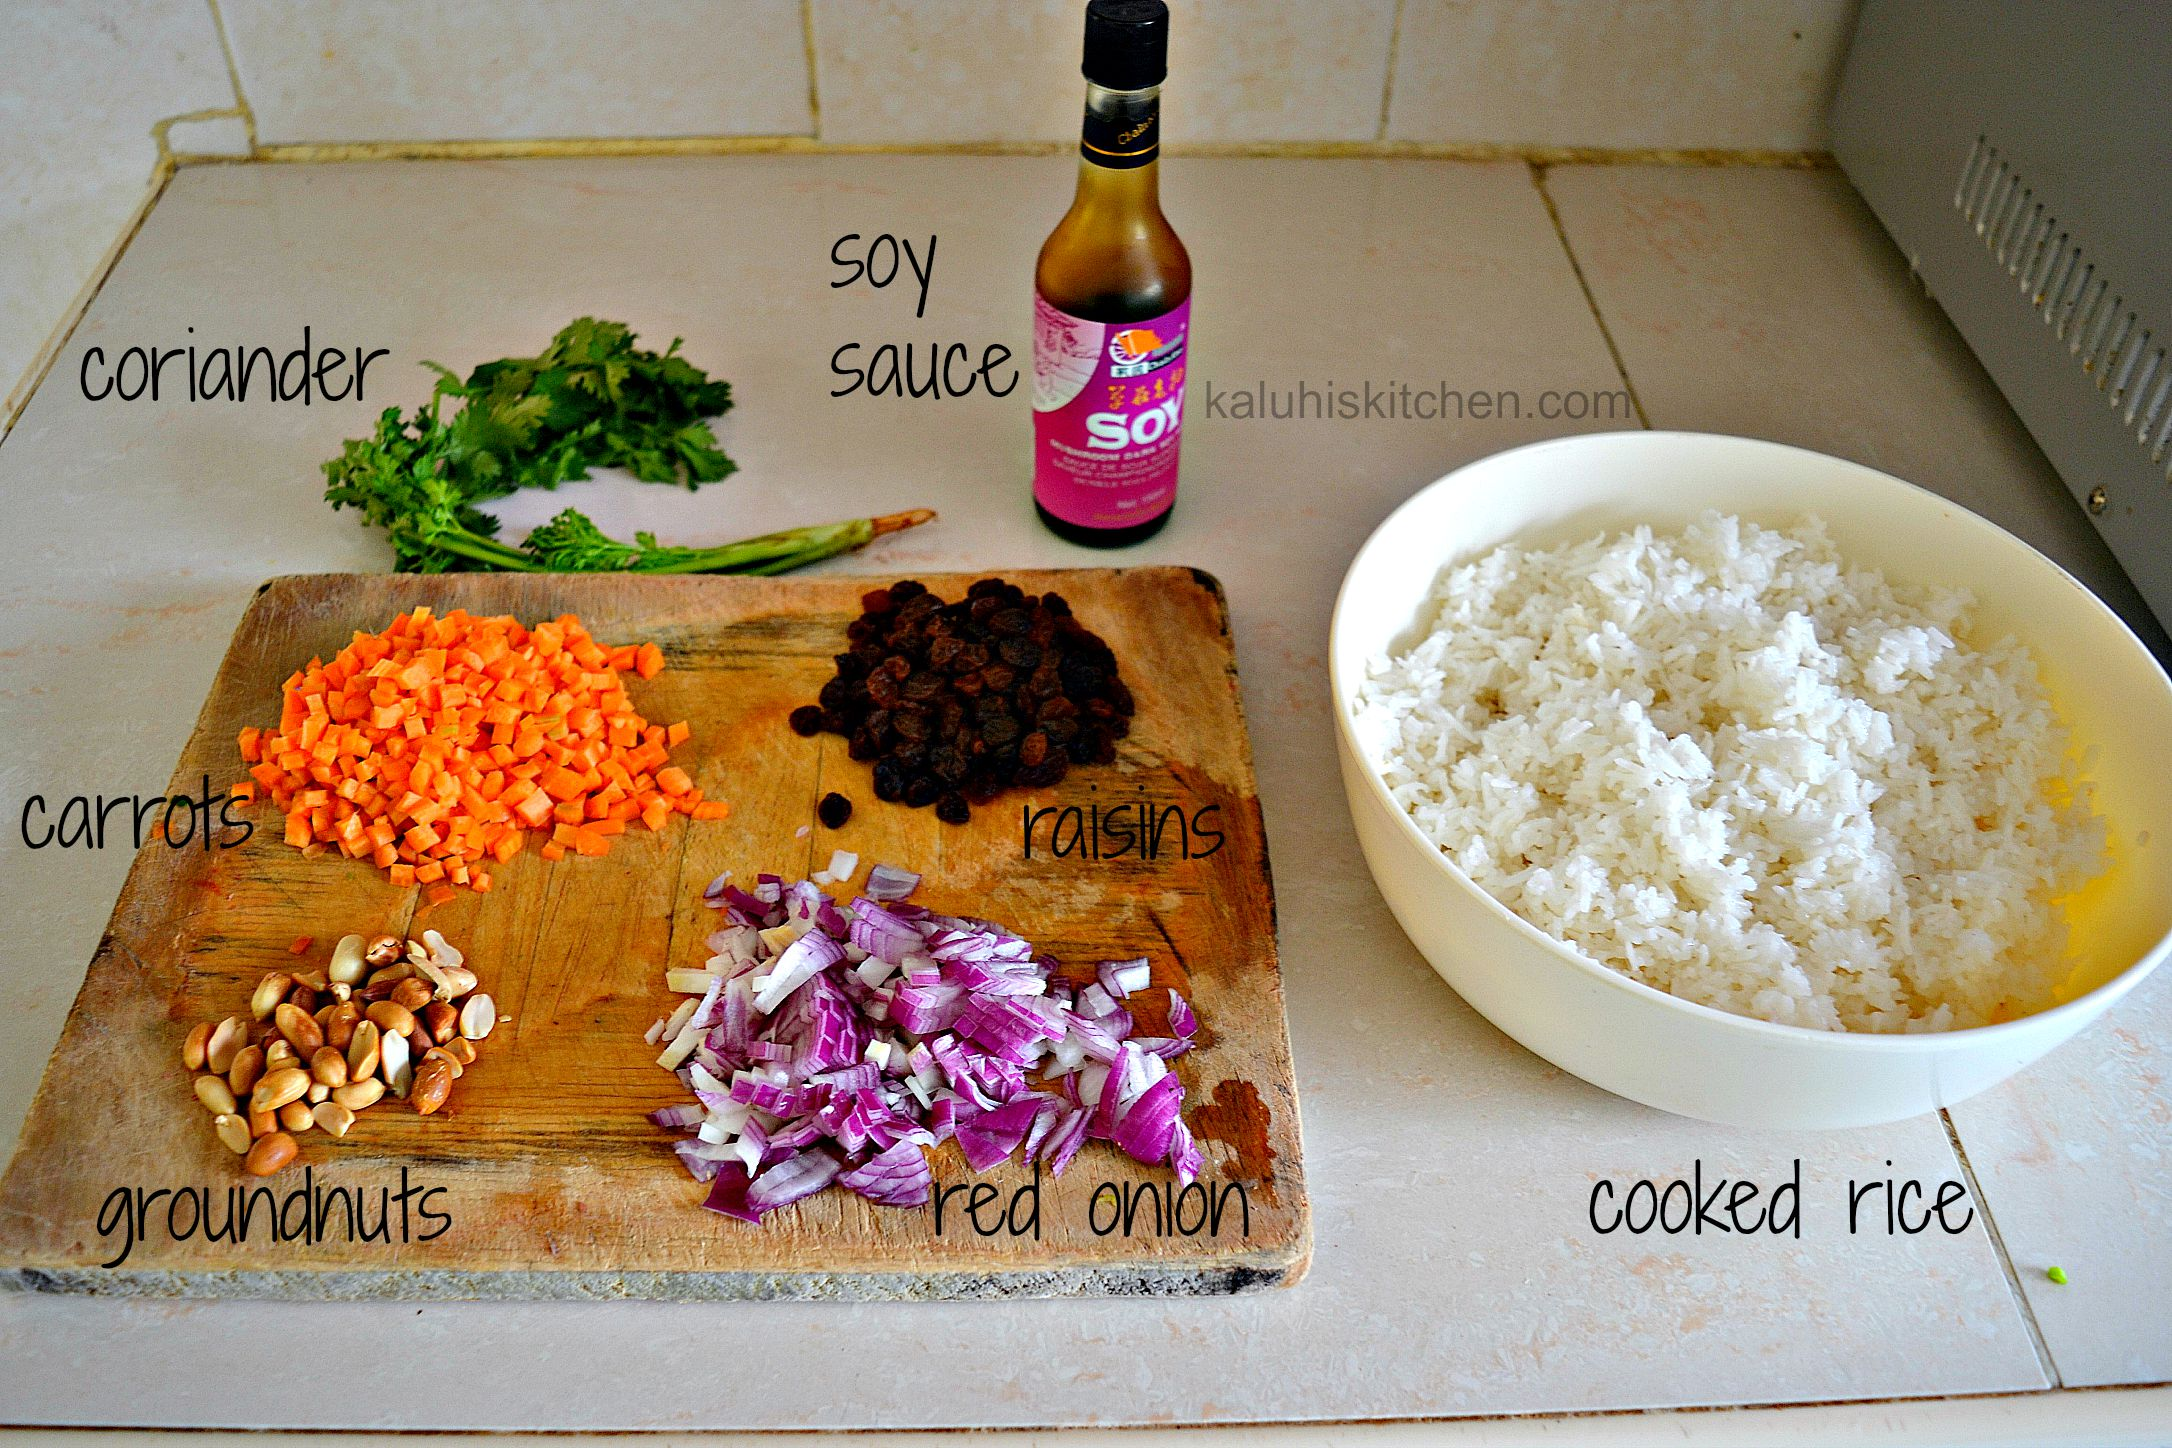 carrots and raisin fried rice ingredients_kaluhiskitchen.com_fried rice